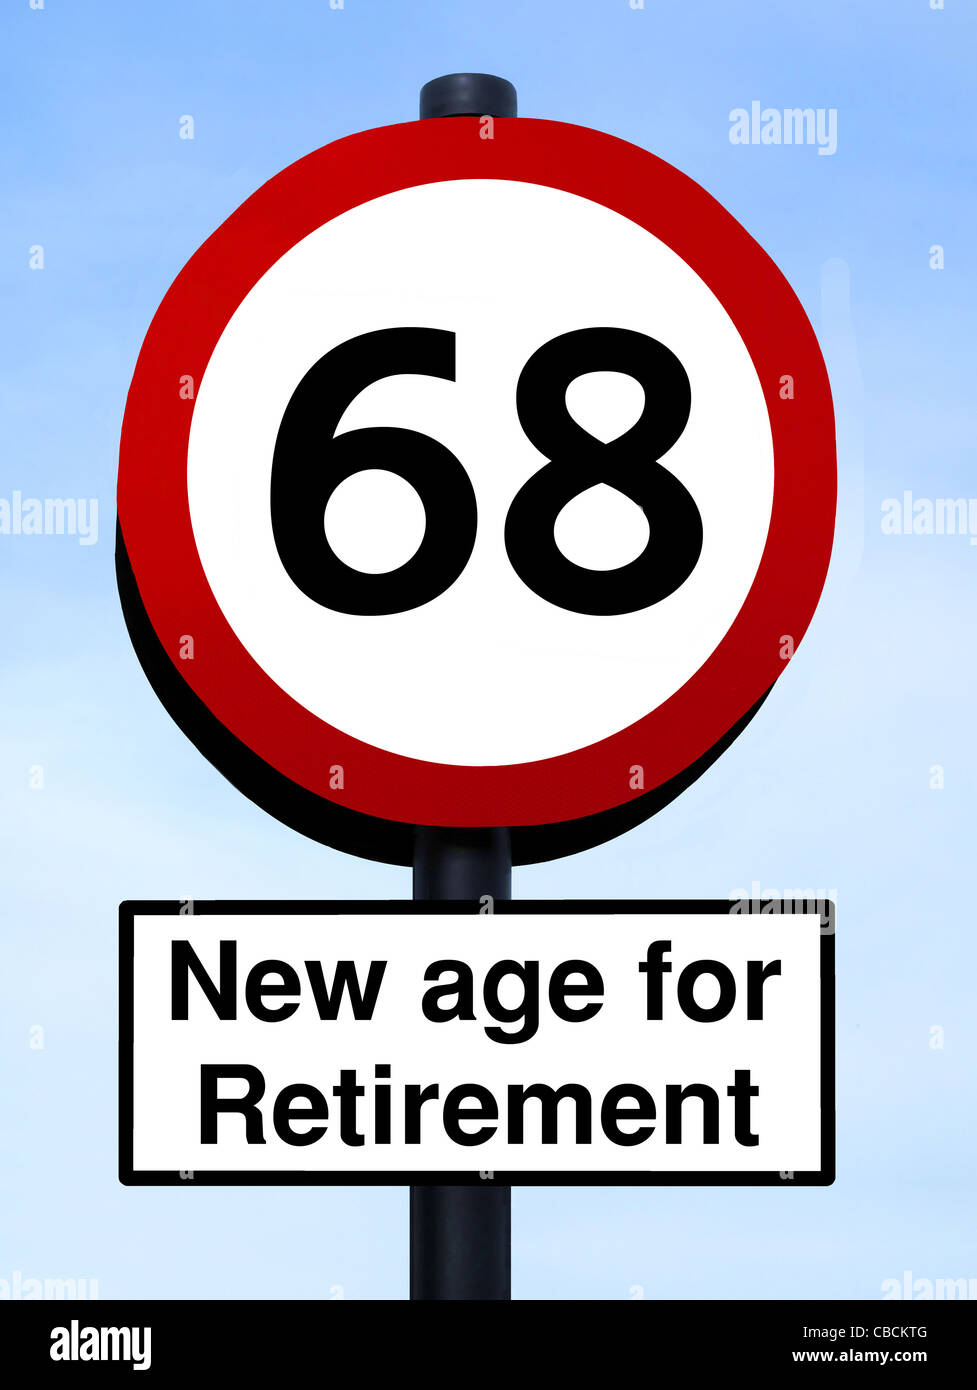 New age for retirement, 68 roadsign, isolated on a blue sky - Stock Image